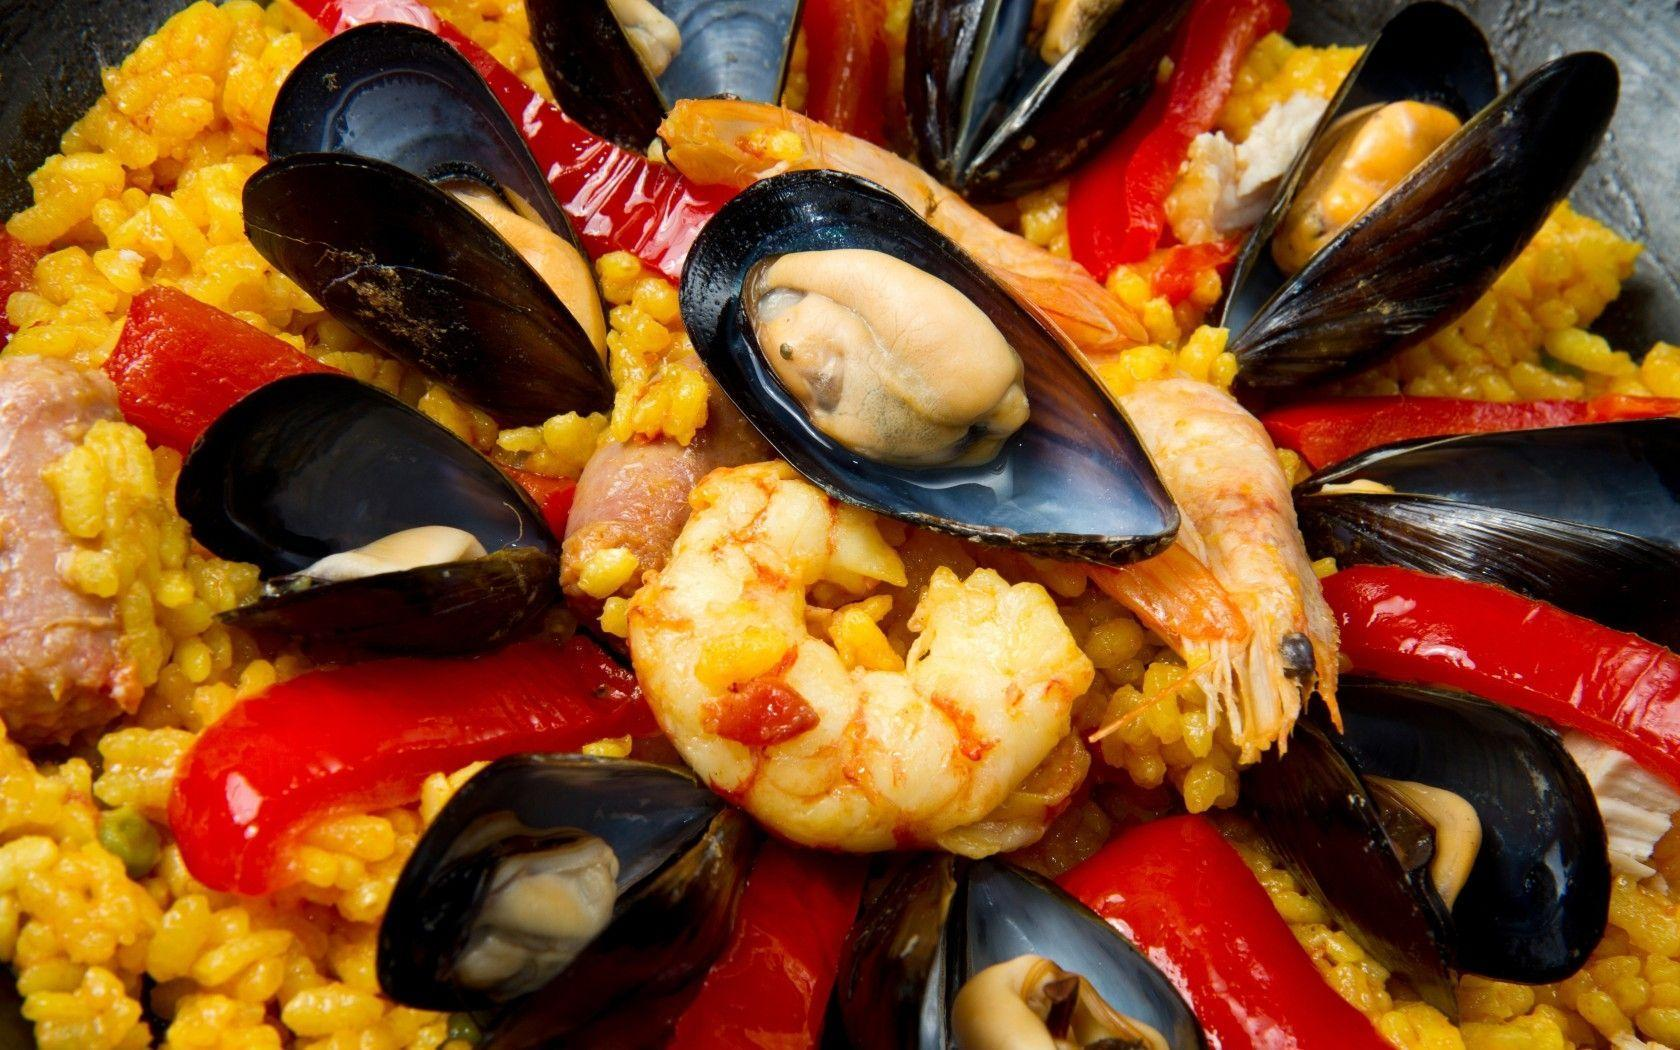 Download Wallpaper 1680x1050 Mussels, Shrimp, Seafood, Pepper ...